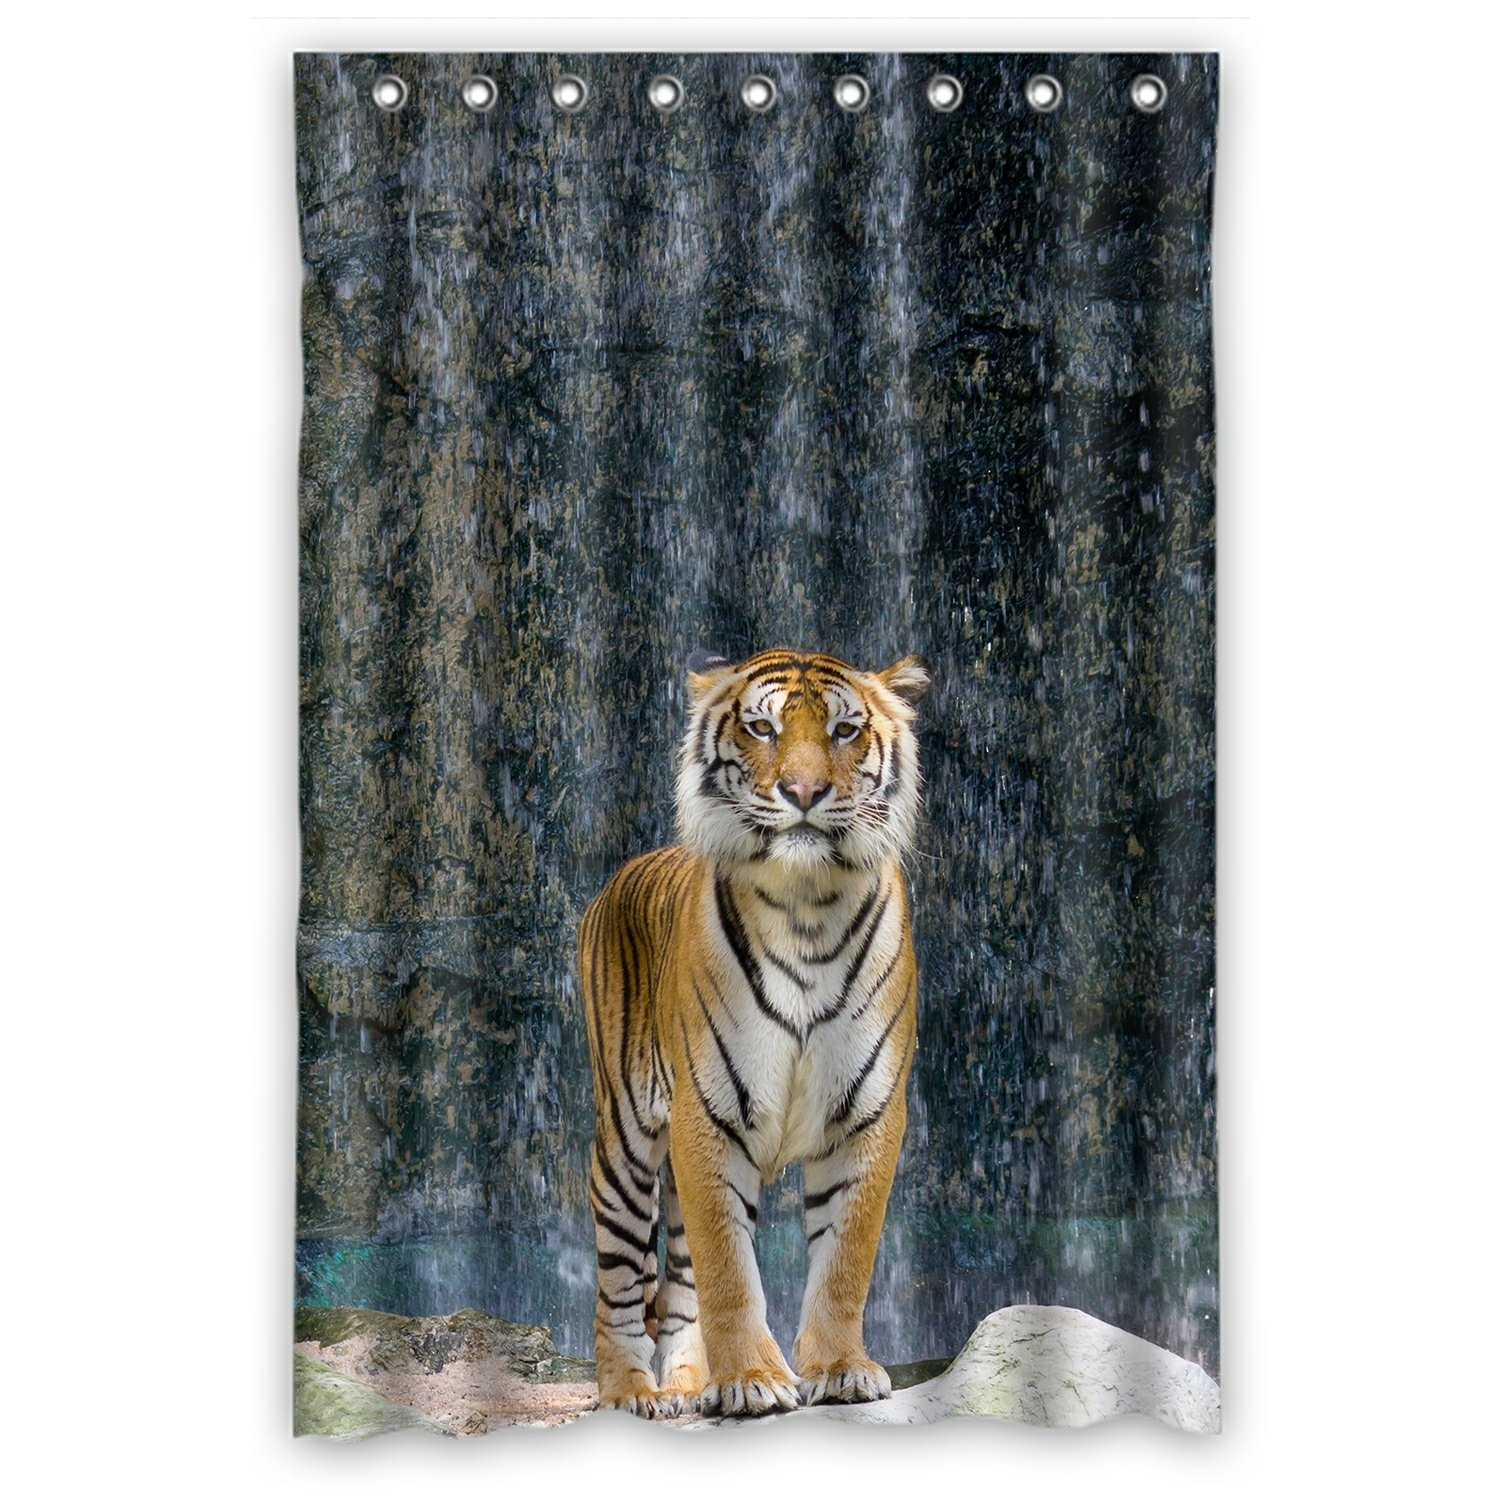 Animal Shower Curtain, Tiger Standing on the Rock near the waterfall mountain landscape Shower Curtain 48x72 inch